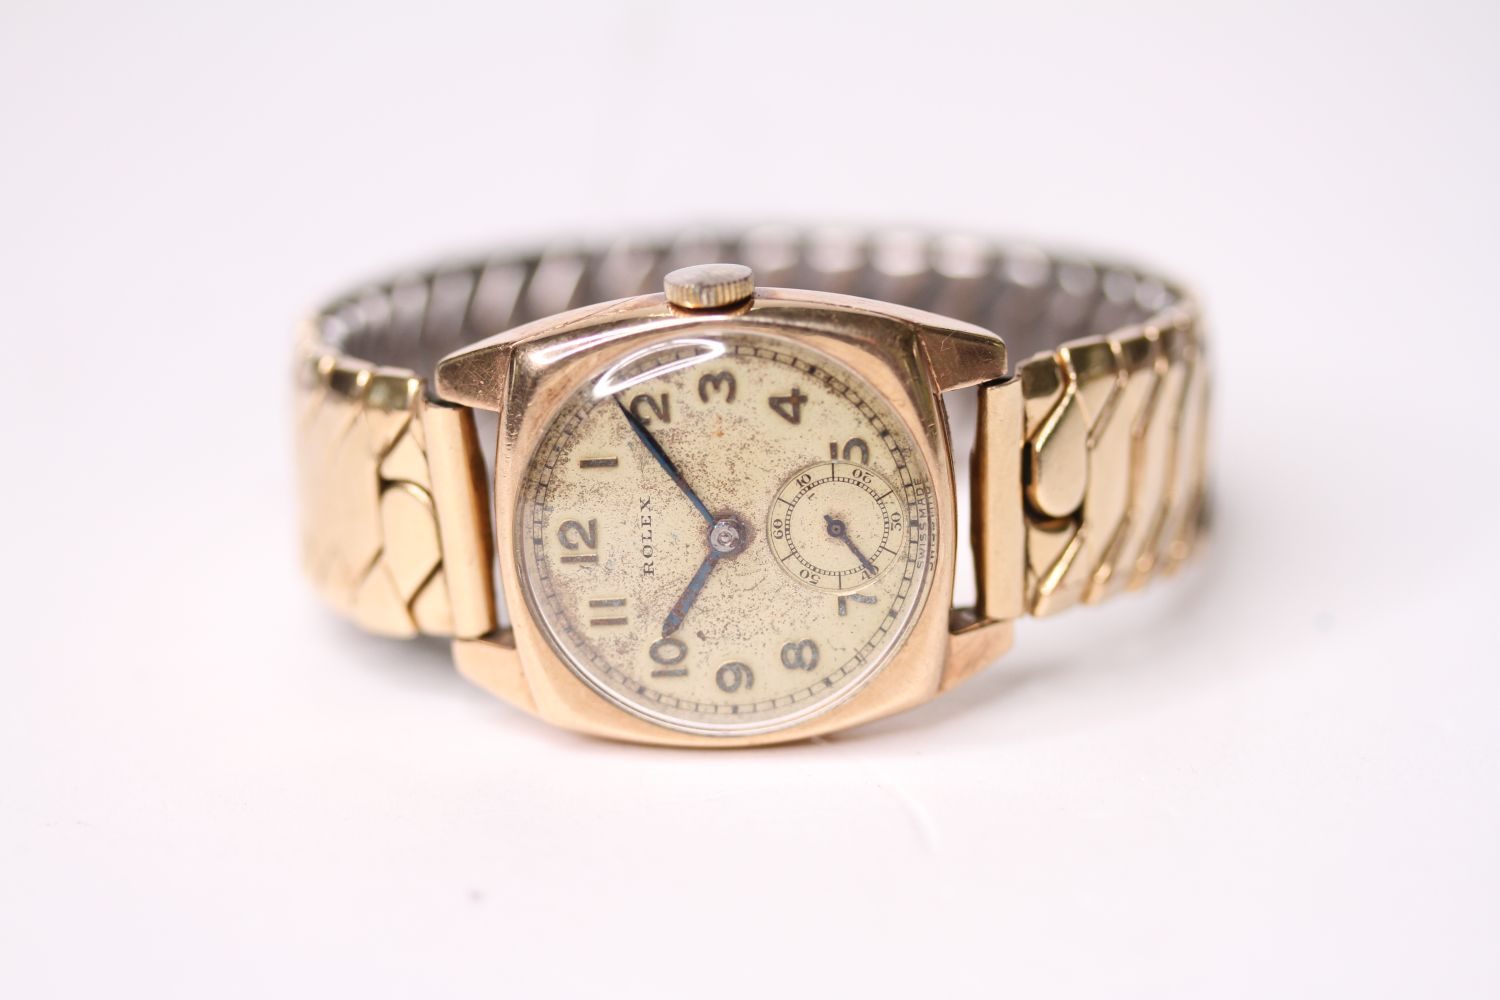 VINTAGE ROLEX WRISTWATCH, circular cream dial with arabic numbers, small seconds at 6 0'clock,